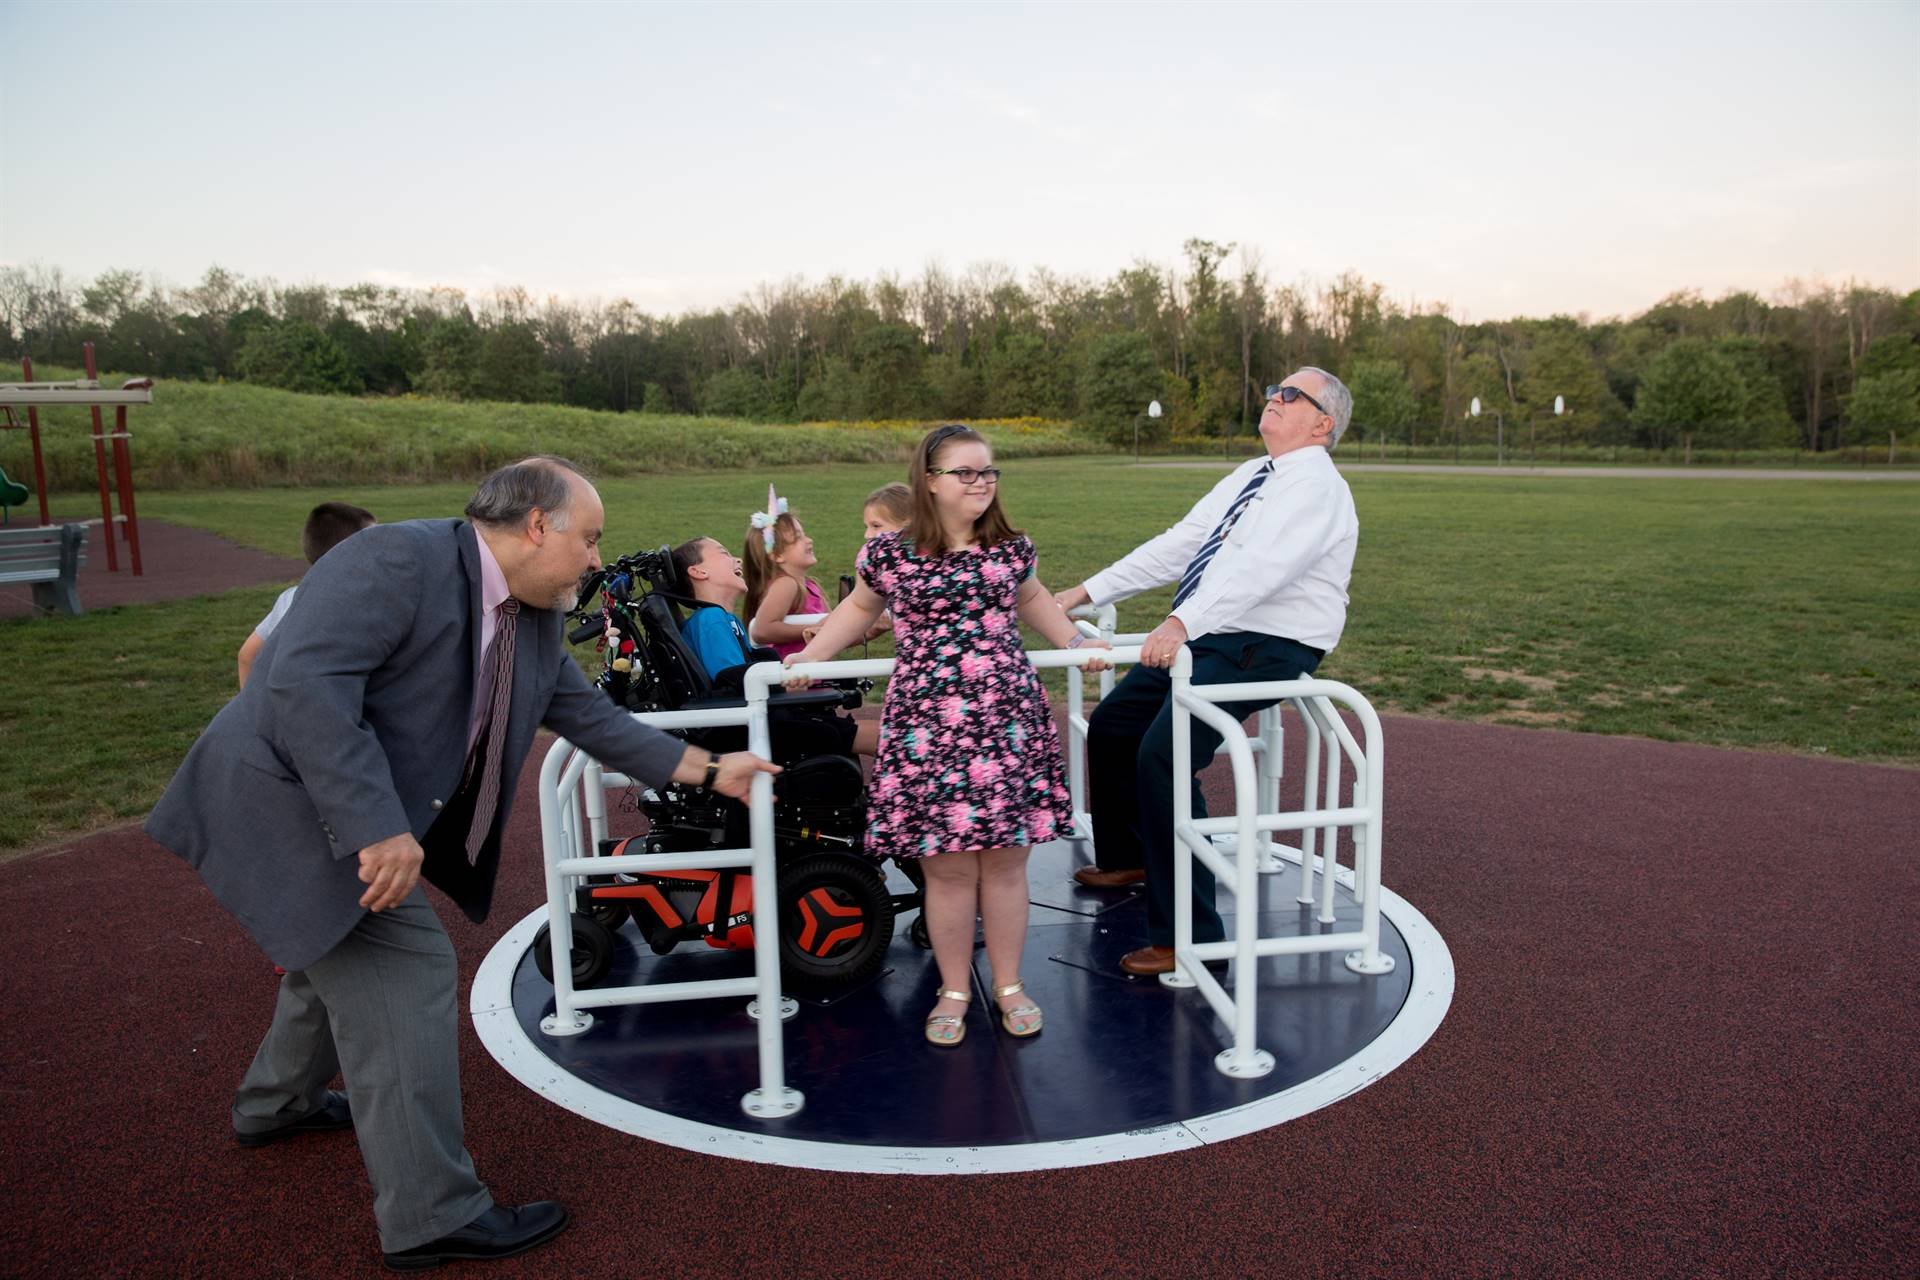 Dr. Guzzetti pushes the merry-go-round while Hon. Tim Finn and kids enjoy the ride